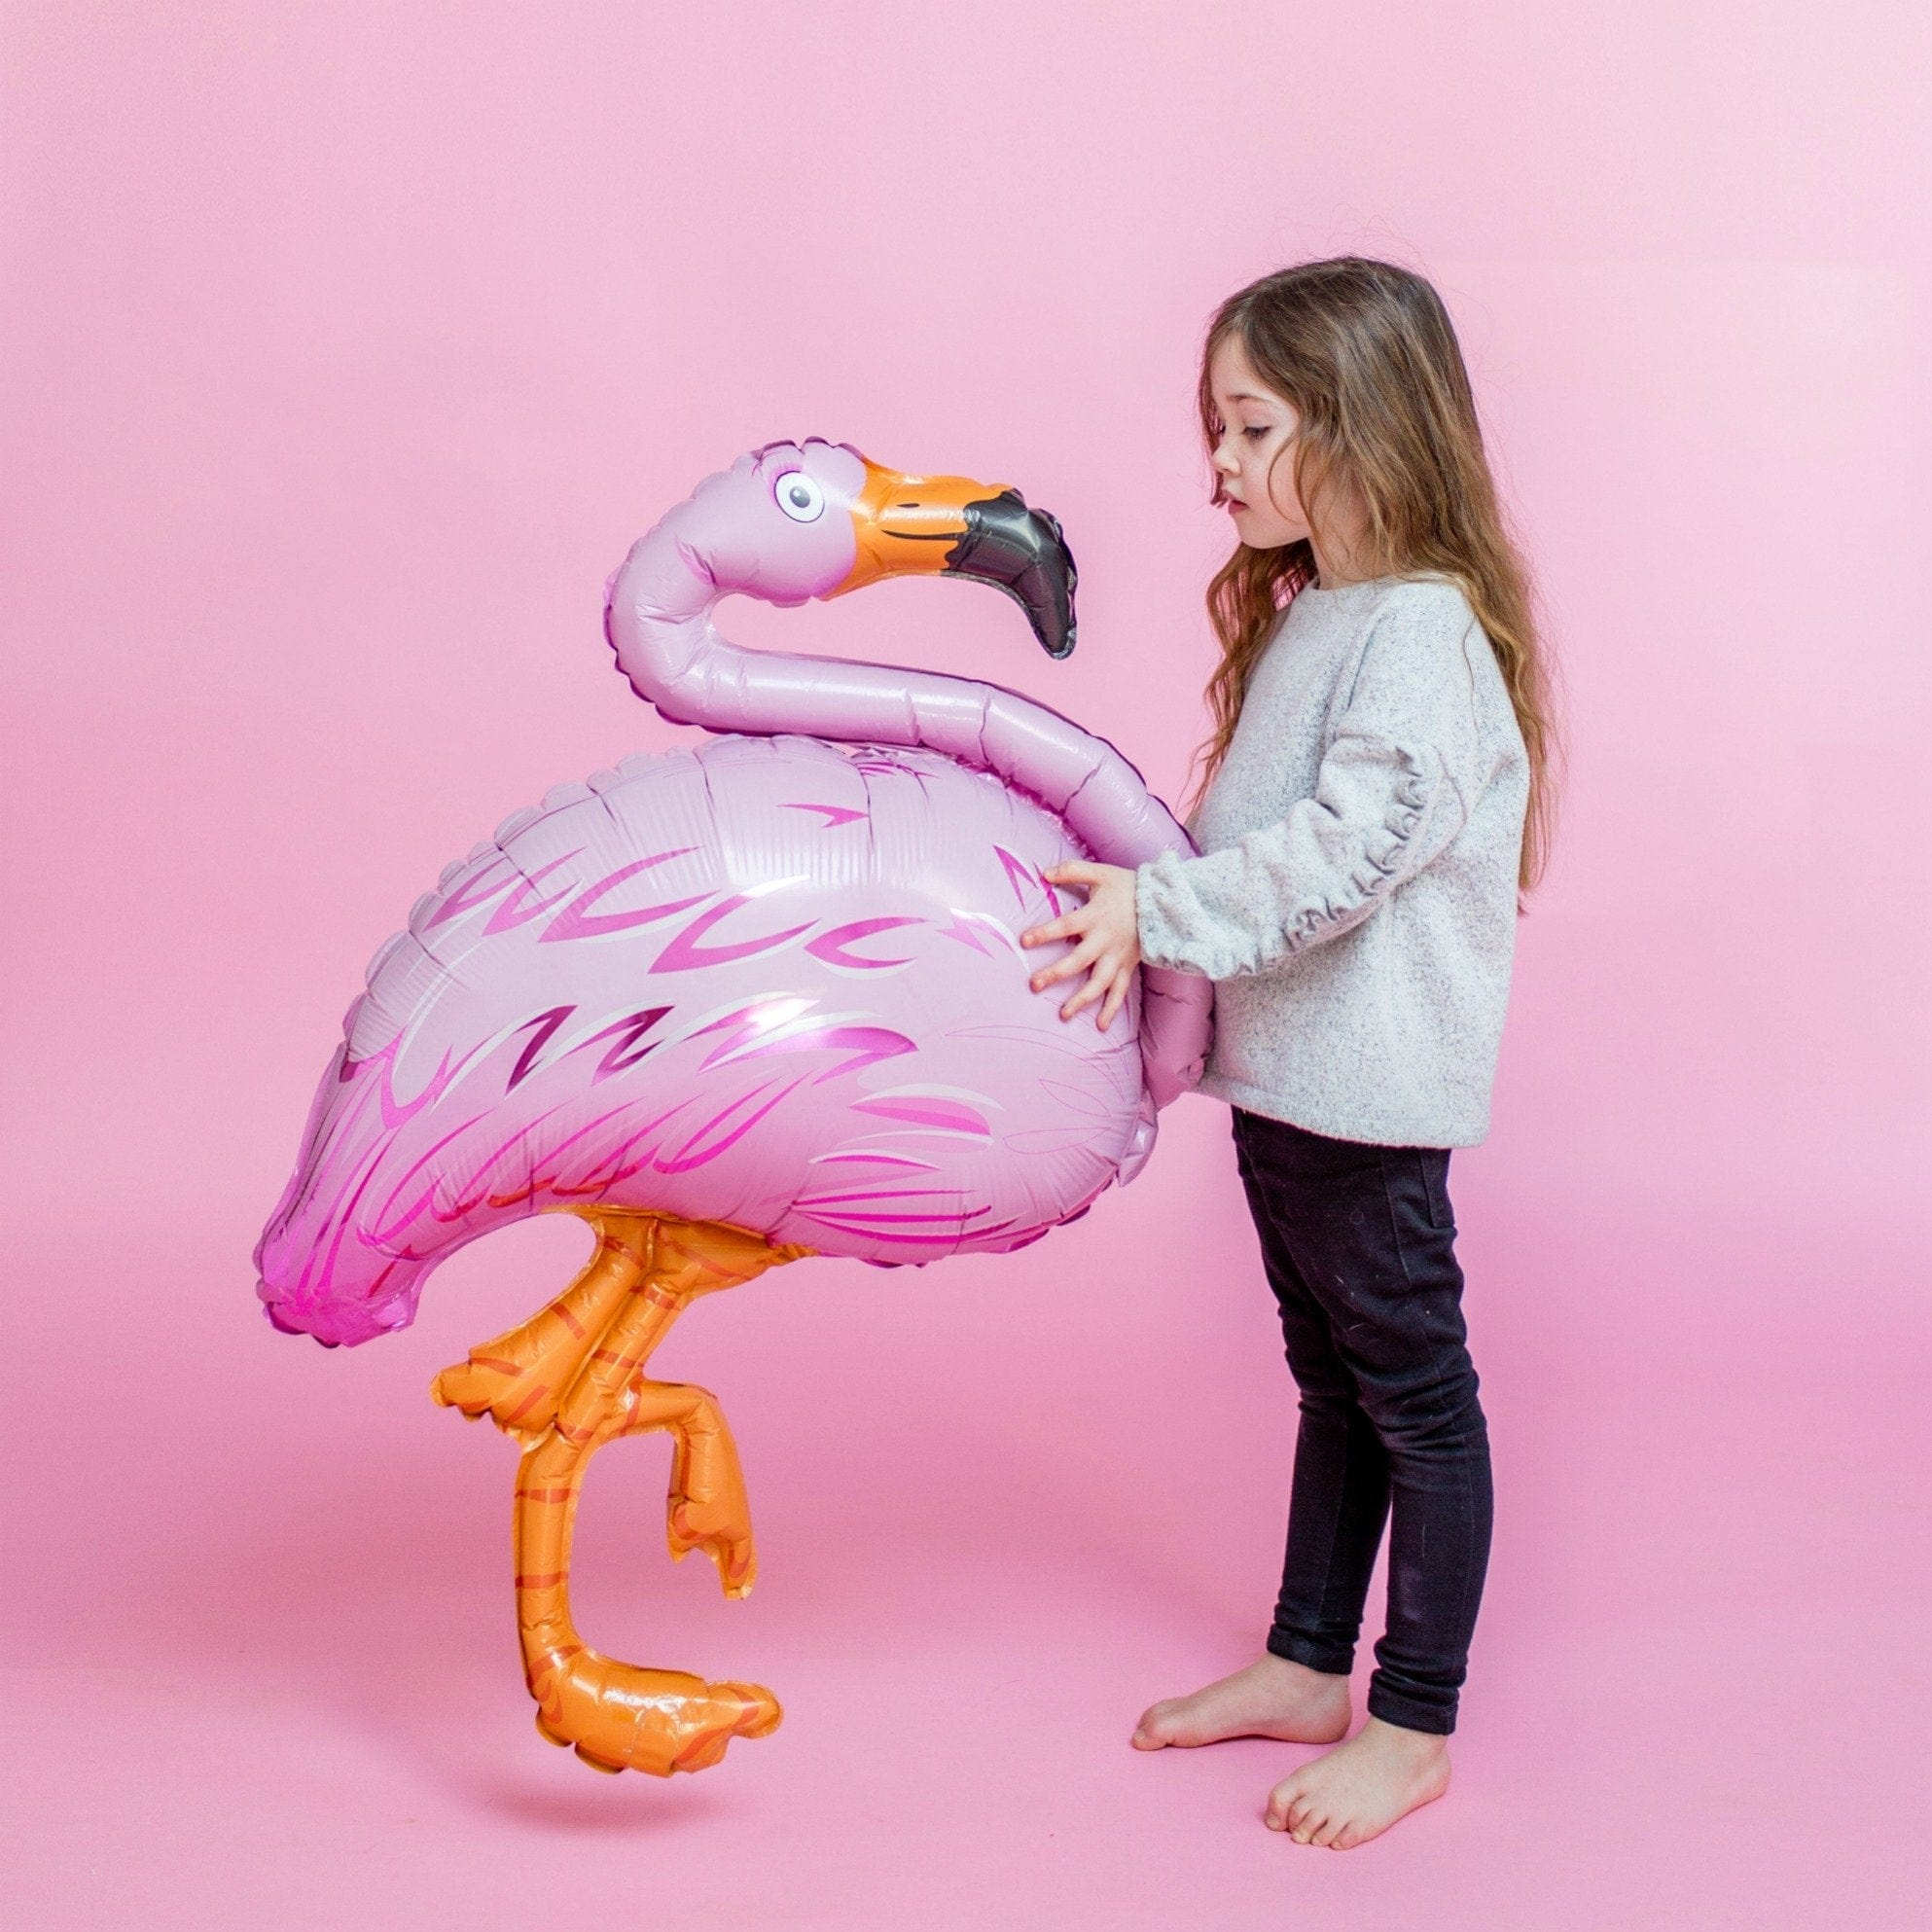 Giant Flamingo Foil Balloon Flamingo Balloon | Flamingo Party Ideas | Fun Shaped Foil Balloons